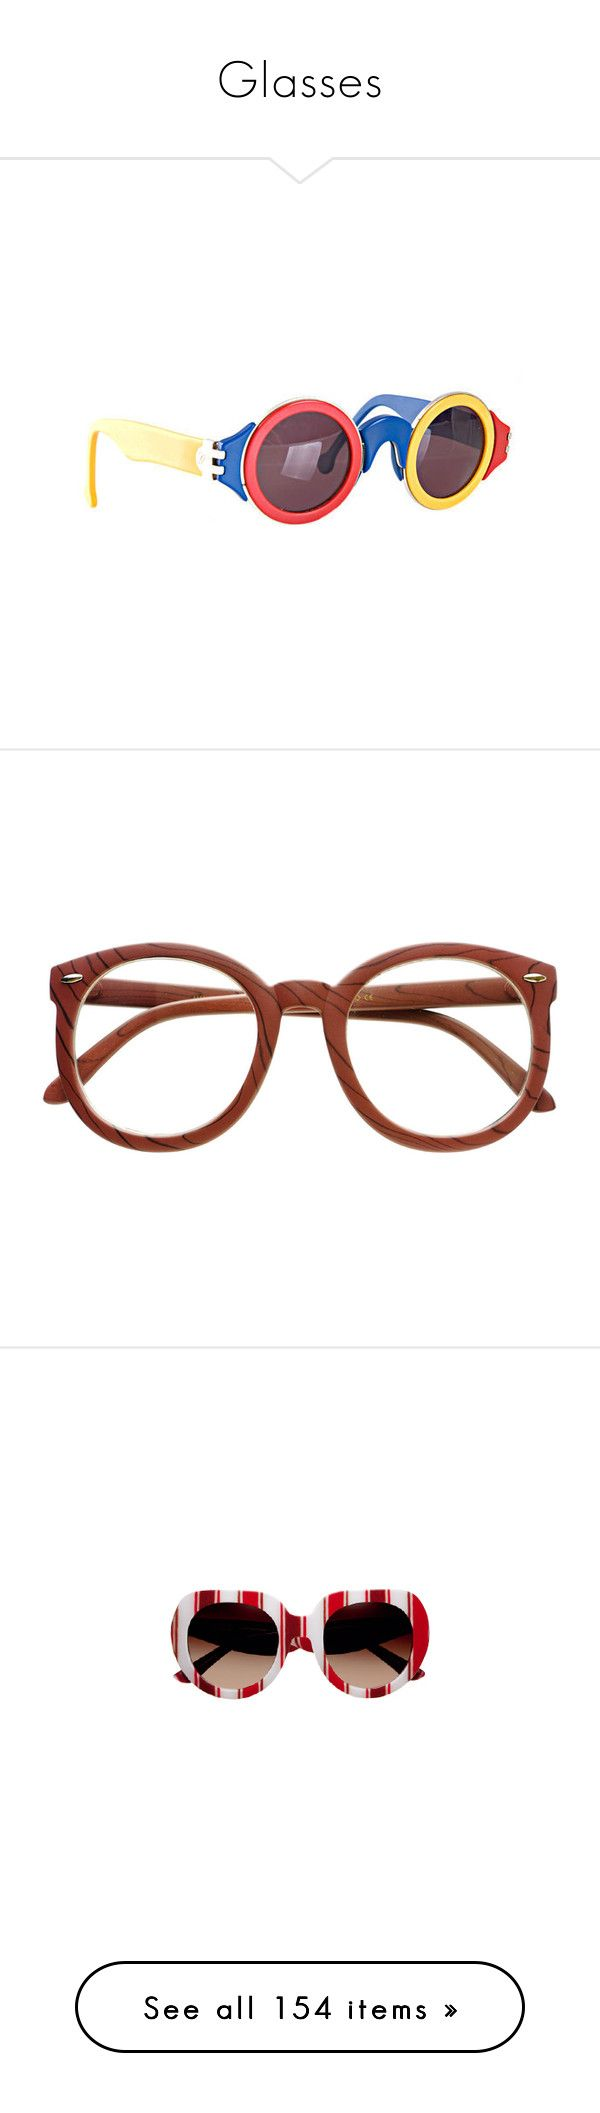 """""""Glasses"""" by k-ura ❤ liked on Polyvore featuring accessories, eyewear, sunglasses, karl lagerfeld glasses, karl lagerfeld, karl lagerfeld eyewear, karl lagerfeld sunglasses, eyeglasses, glasses and fillers"""